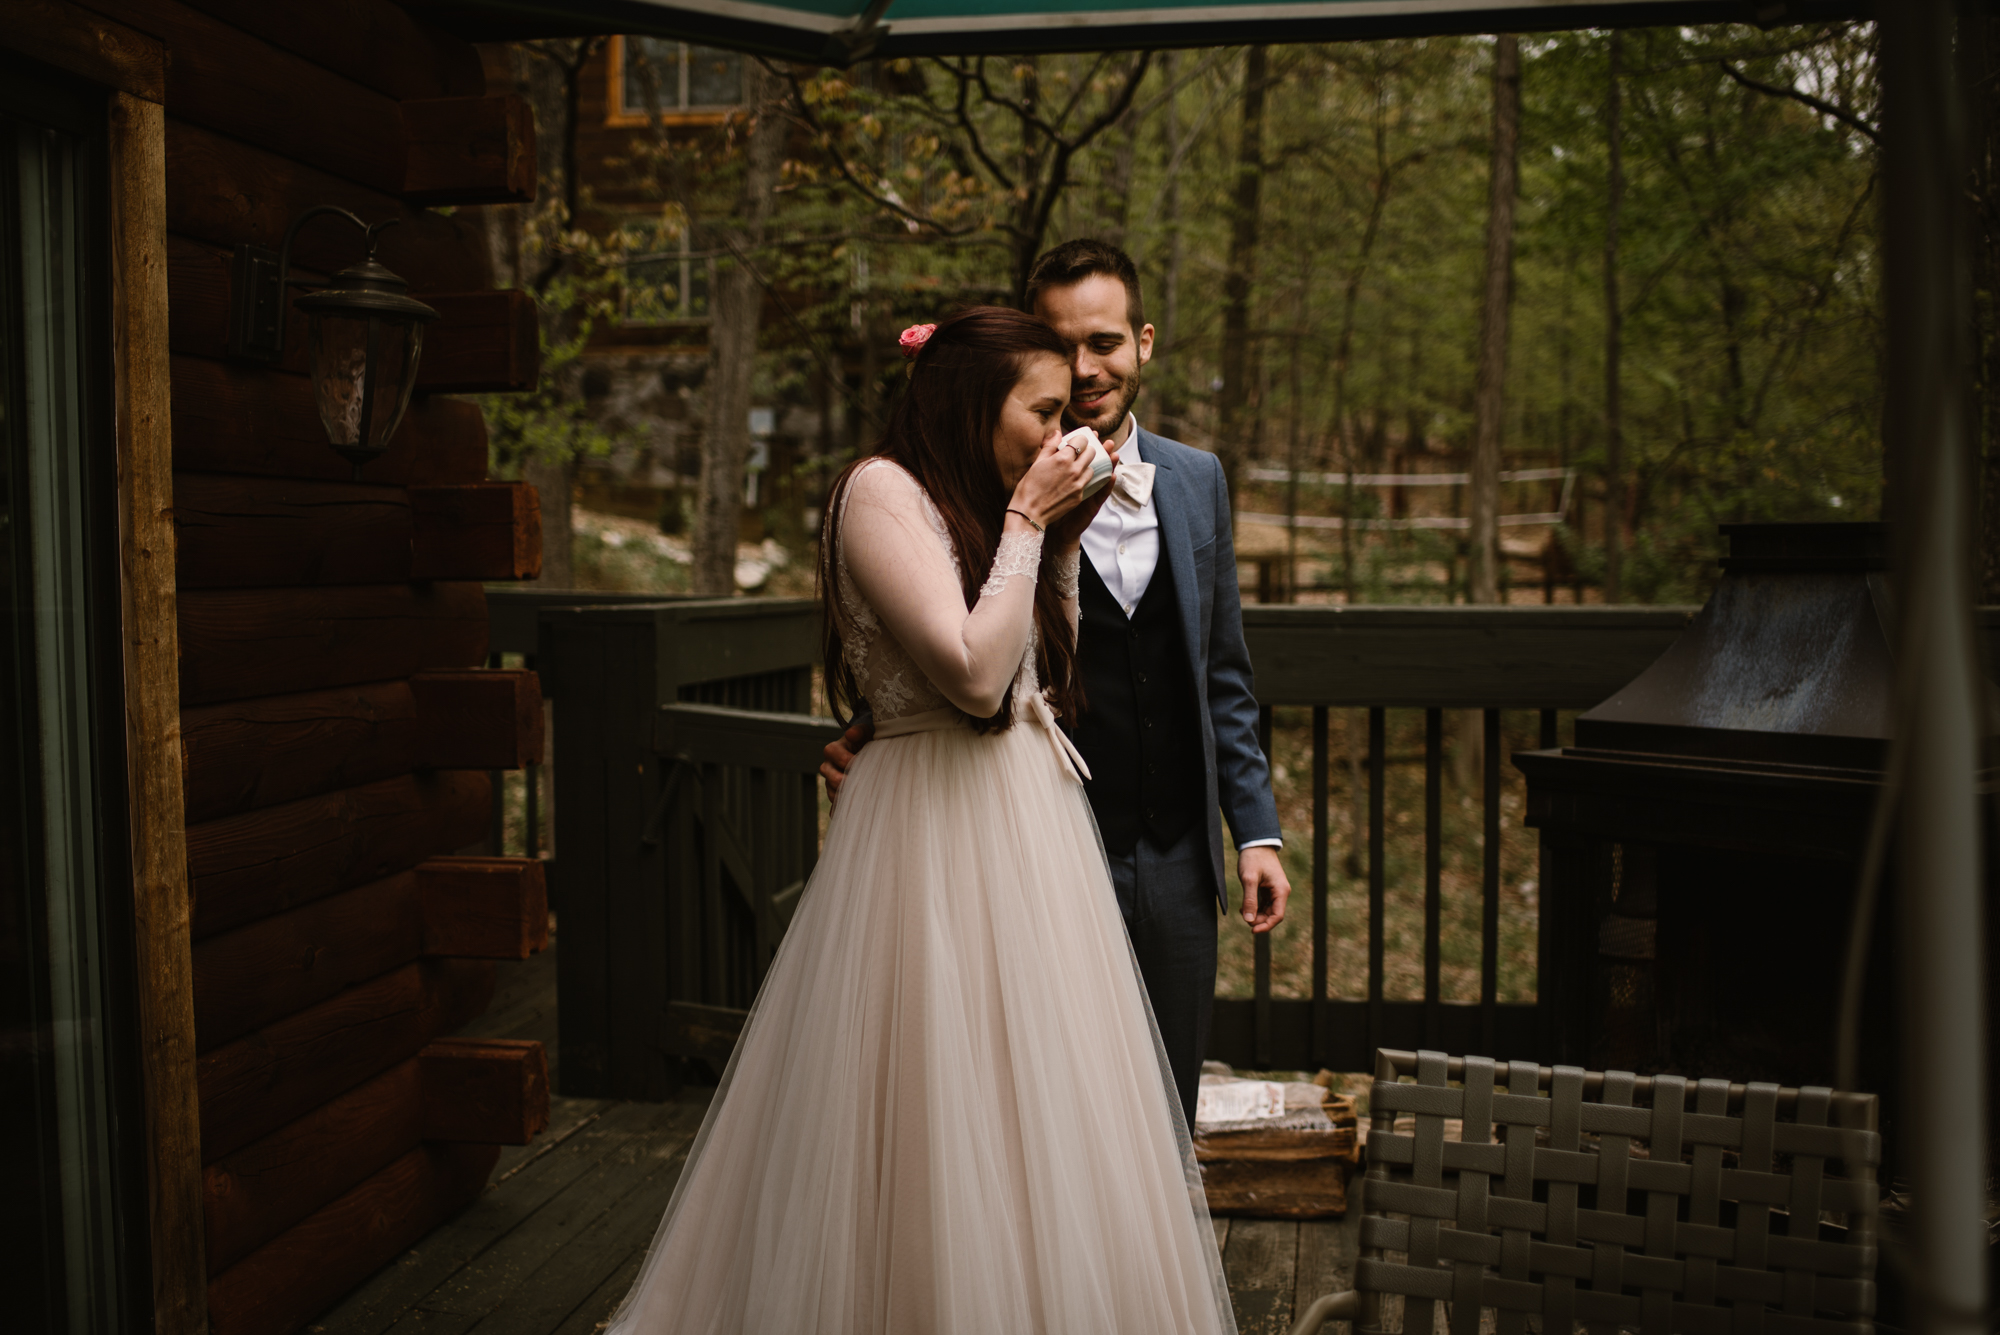 Paula and Andrew - Small Adventurous Wedding in Shenandoah National Park - Blue Ridge Mountain Wedding - White Sails Creative - Mountain Elopement_50.jpg